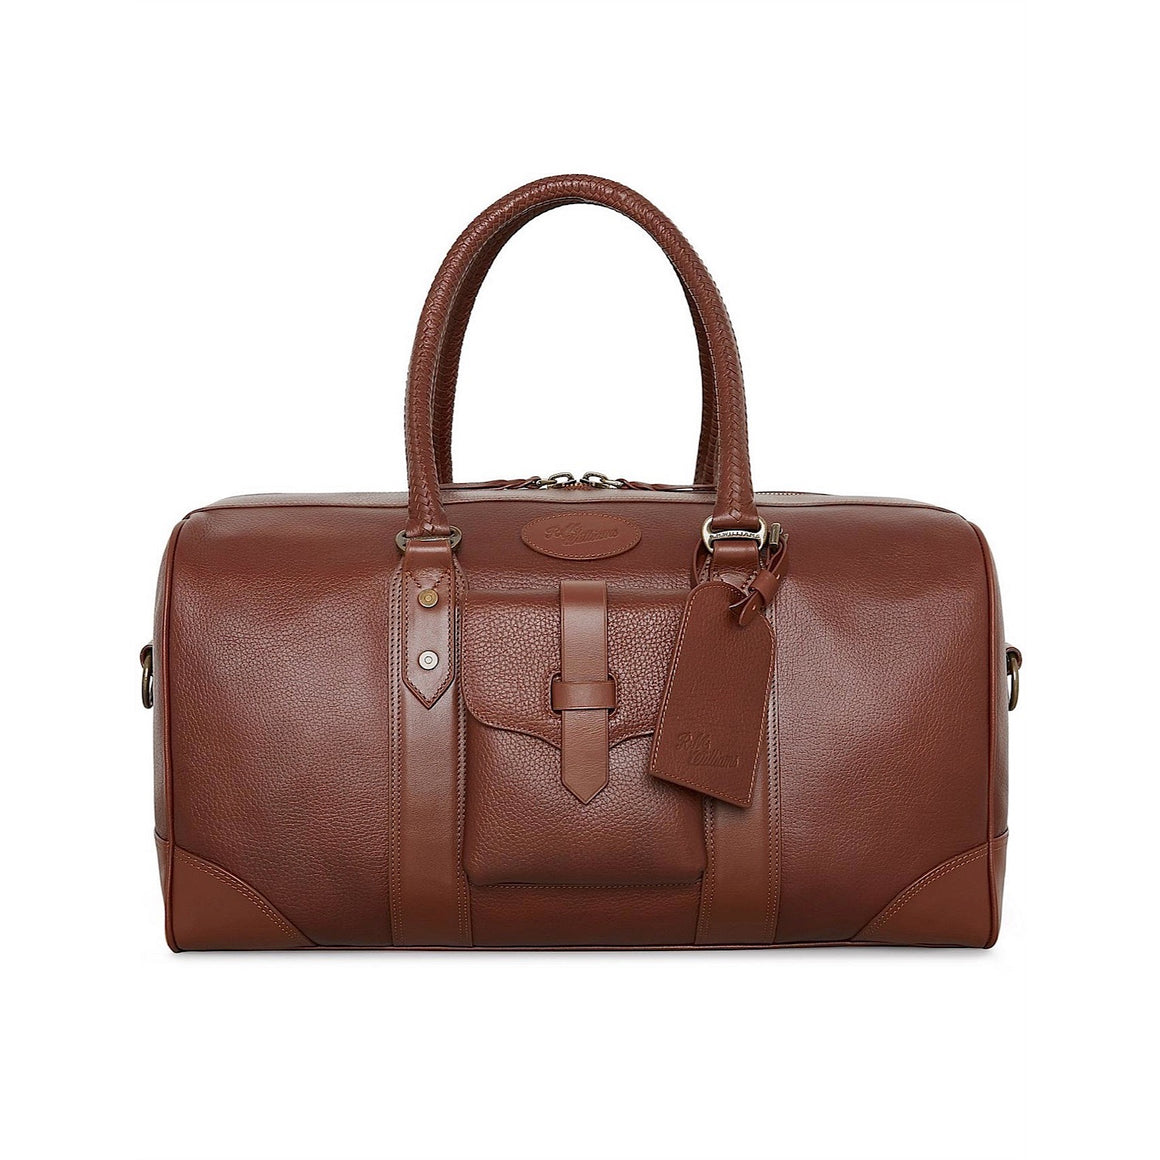 R.M.Williams Signature Overnight Bag Whiskey